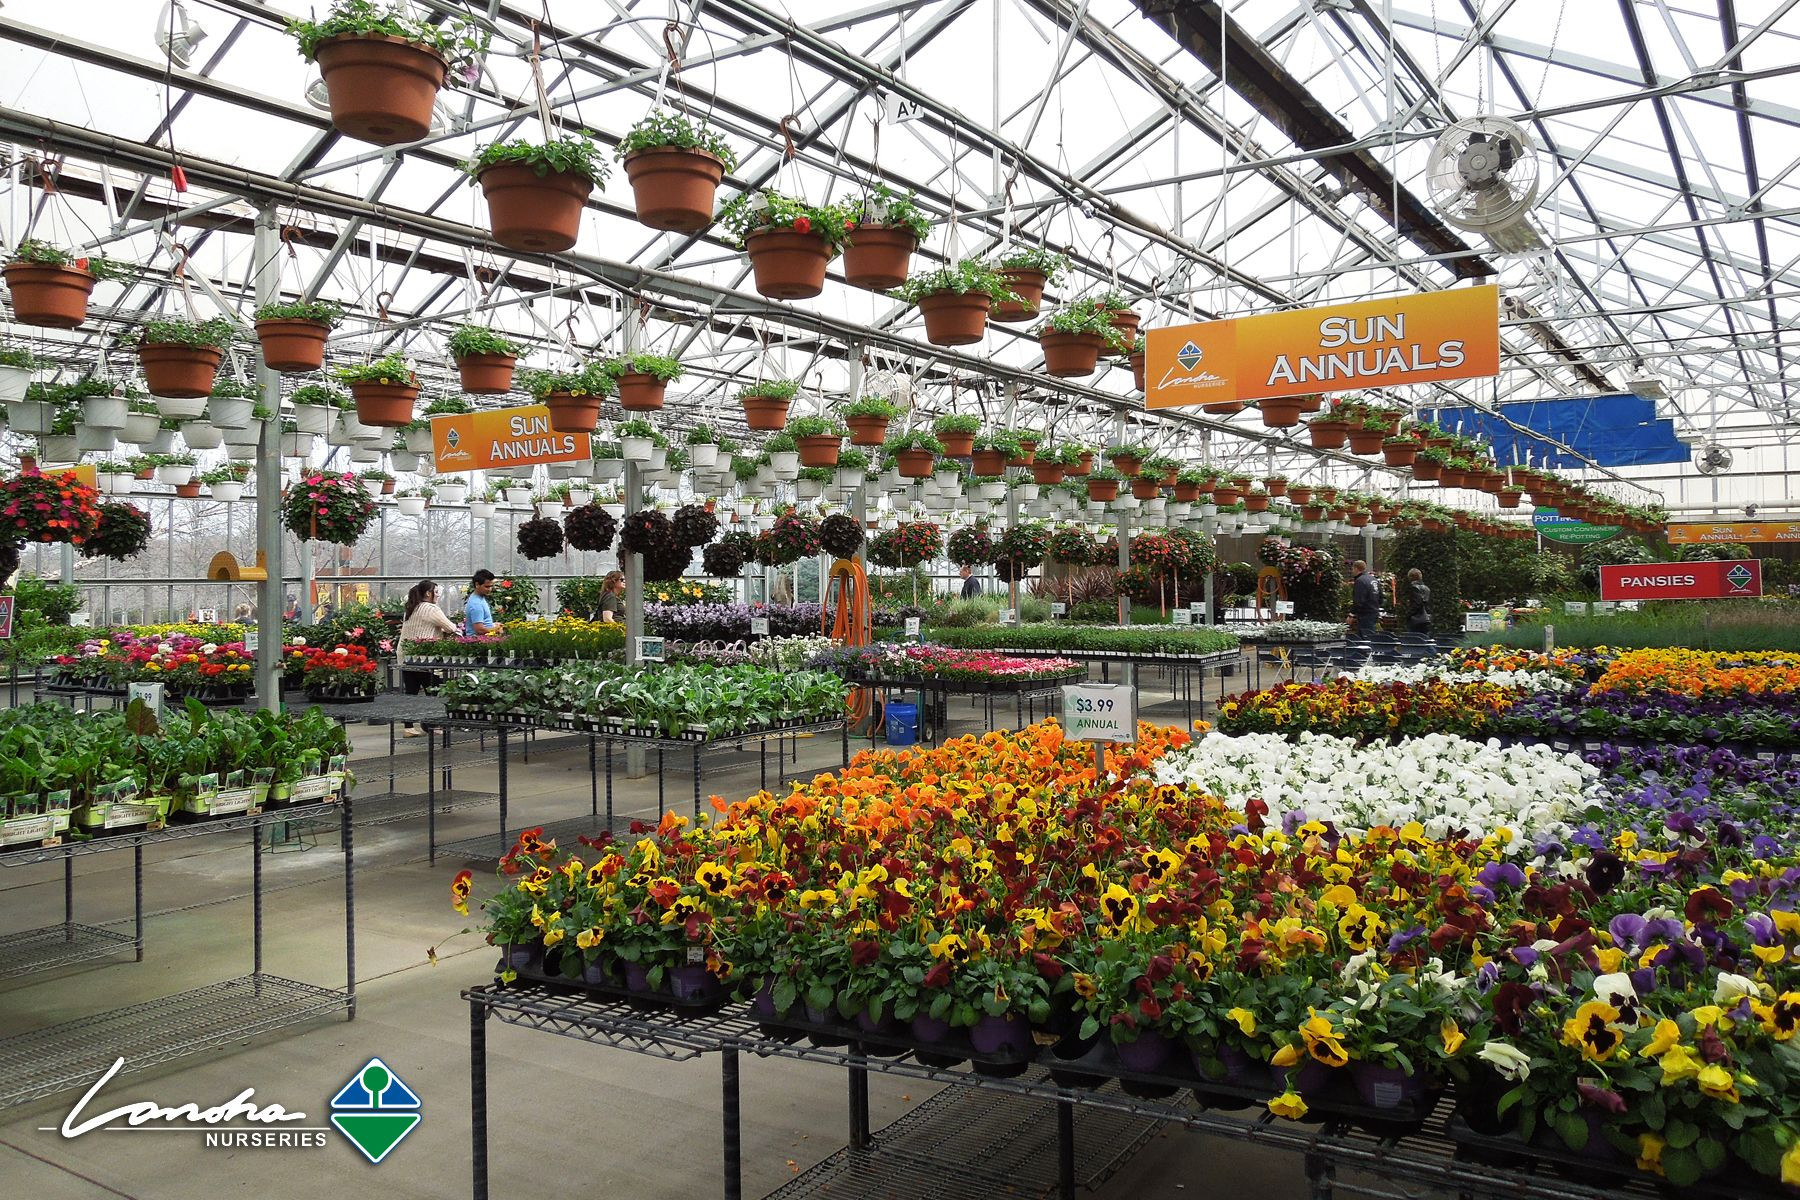 Spring is here and our greenhouse is full of color